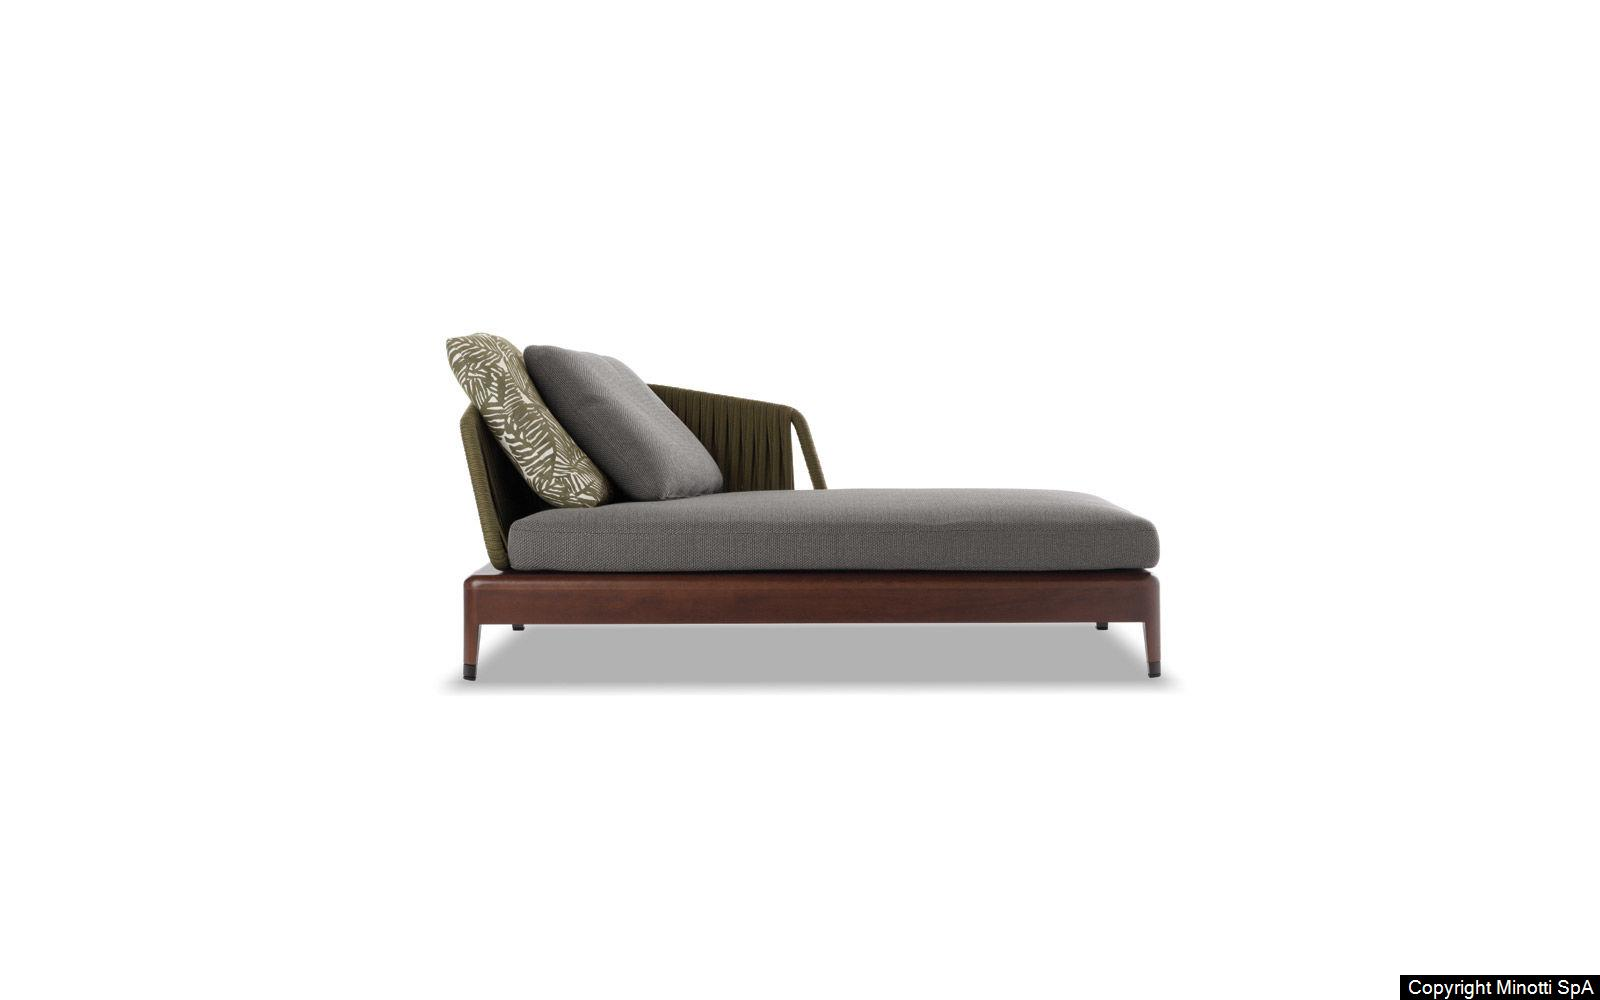 z_indiana-chaise-scont (1)